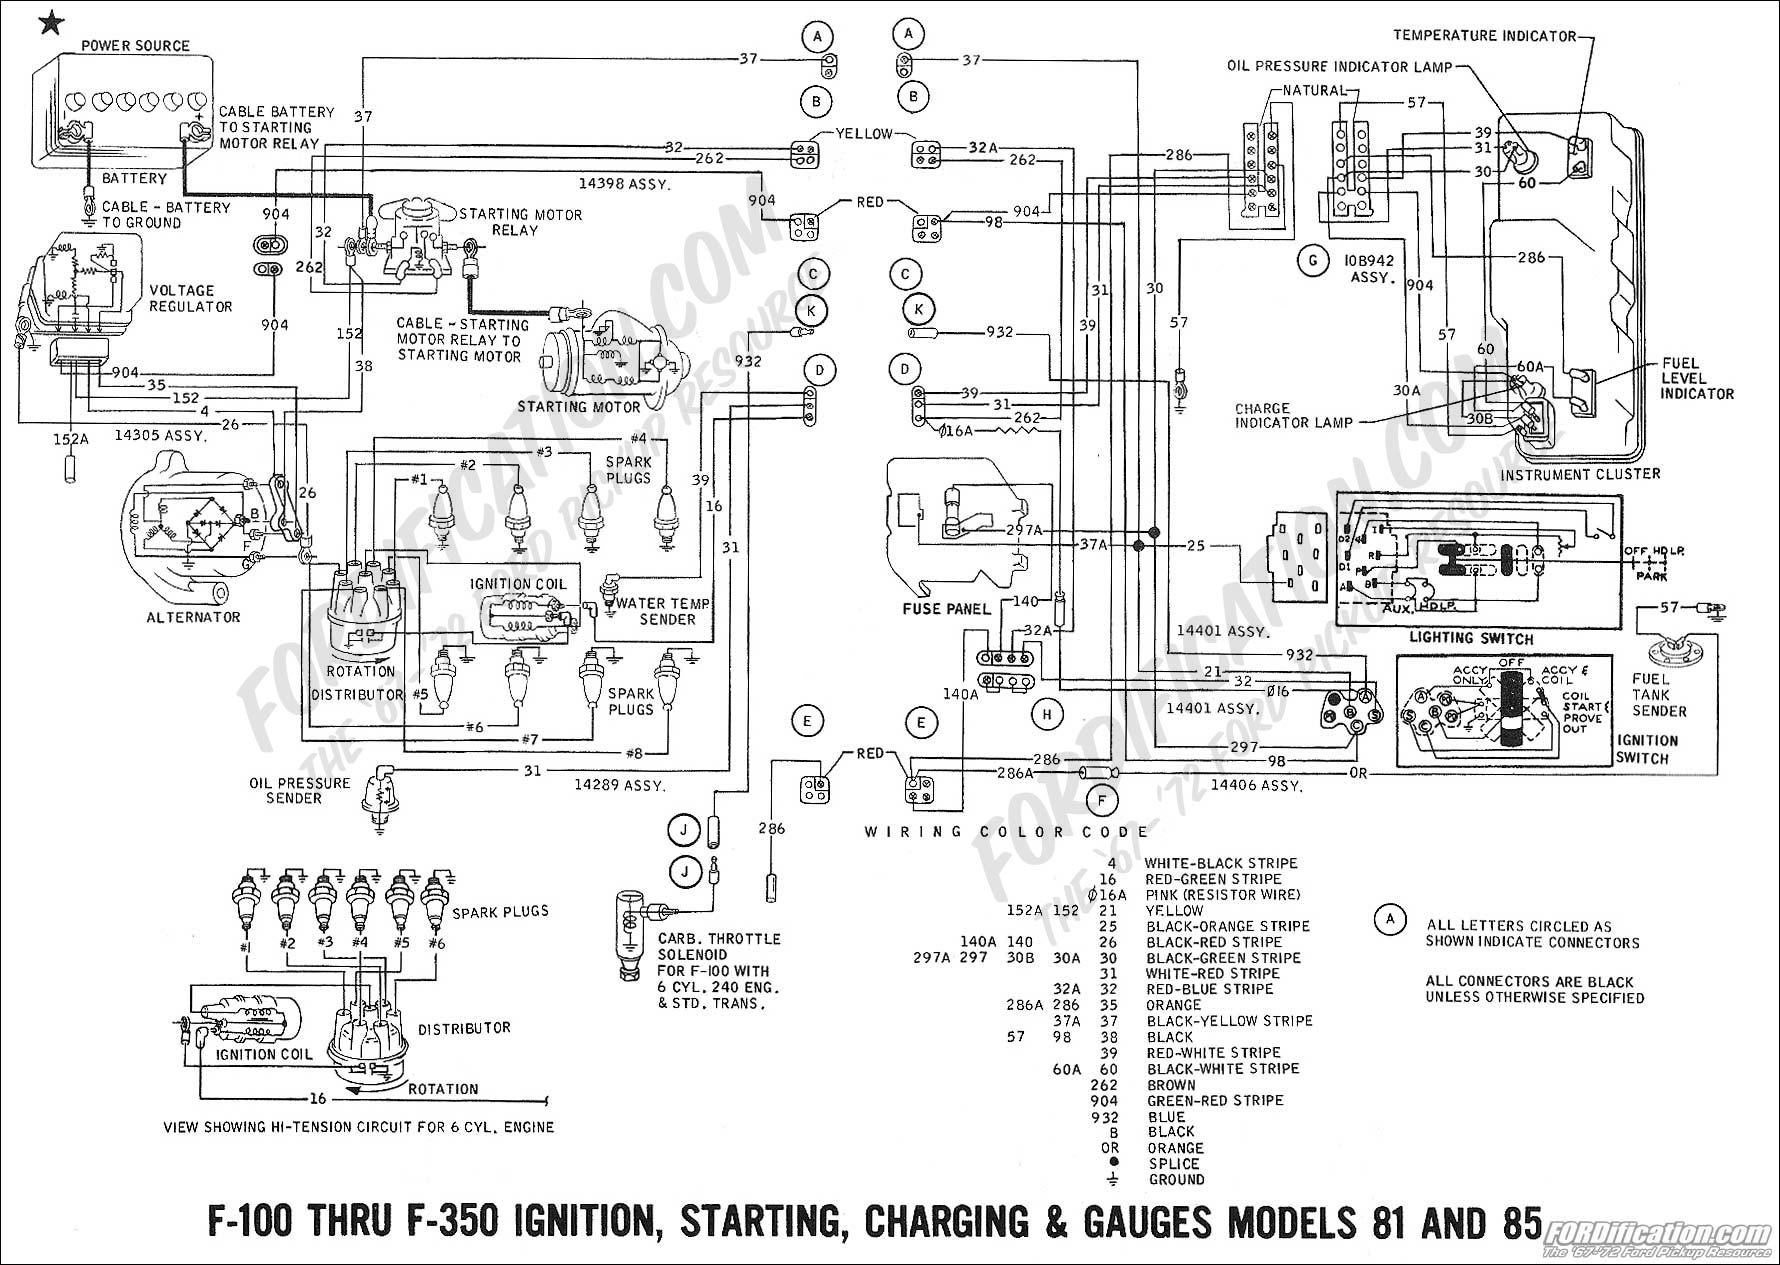 wiring 1969charging2?qualityd806stripdall ford e350 wiring diagram efcaviation com ford e350 fuse box diagram at gsmx.co